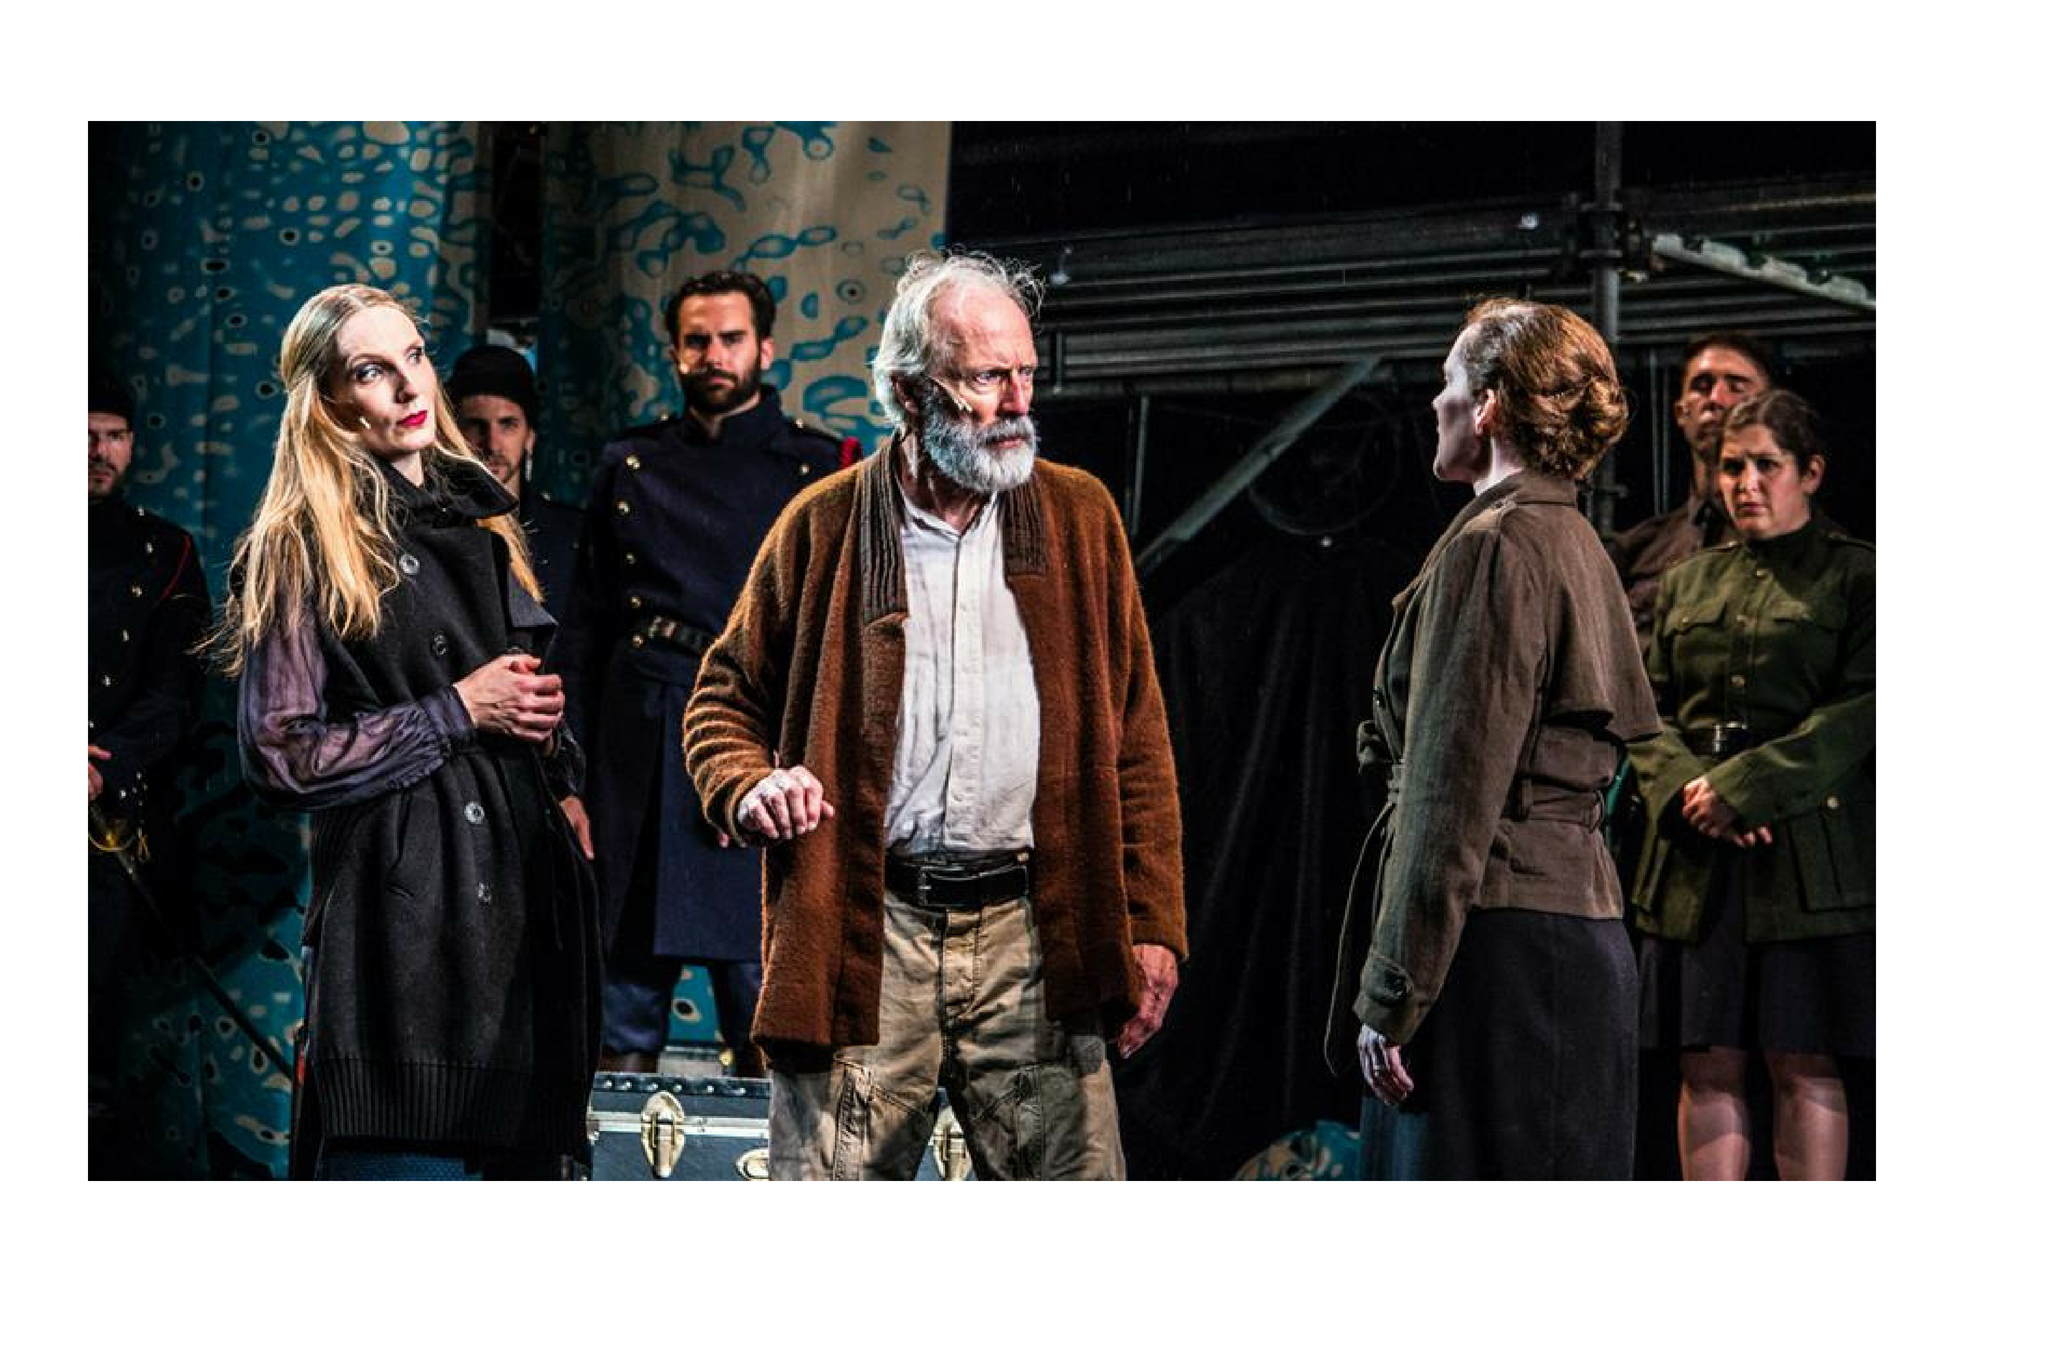 Deb Martin (Goneril), Brennan Lowery (Soldier) Will Lyman (King Lear), Jeanine Kane (Regan) and Kelsey Lidsky (Soldier) in King Lear, Shakespeare on the Common 2015-Photo by Andrew Brilliant